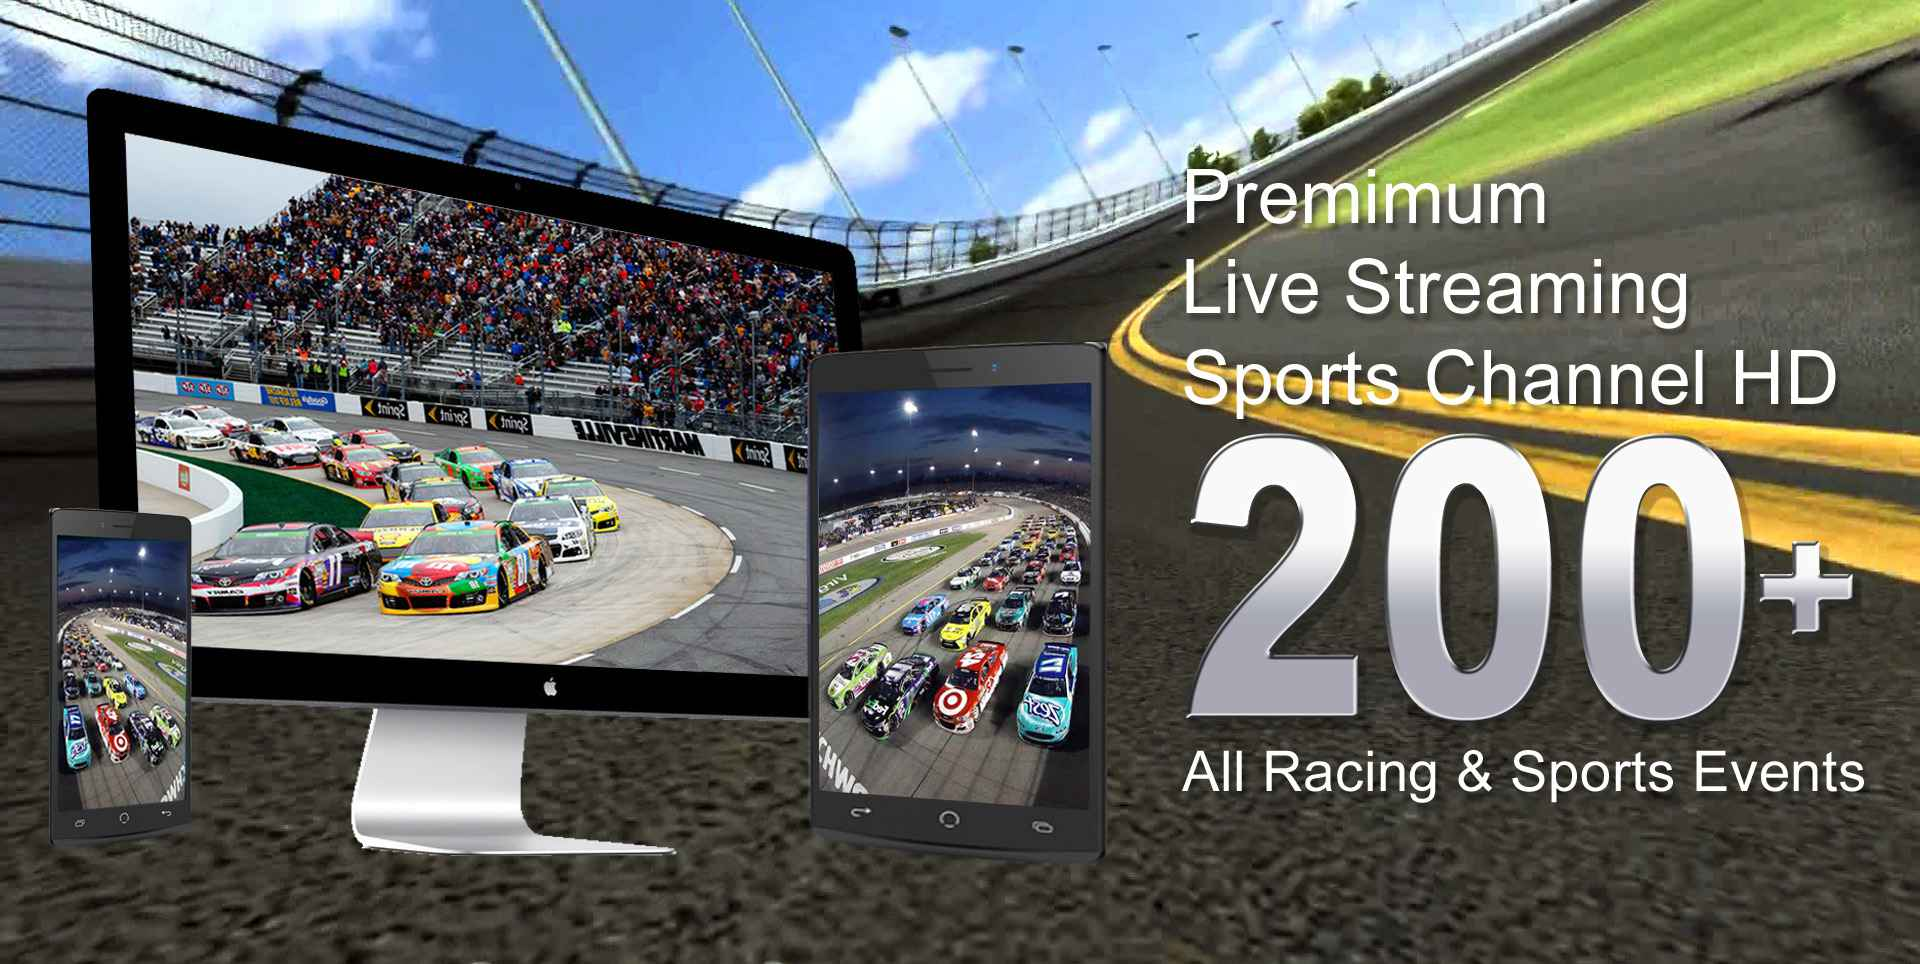 Watch The Sprint Unlimited 2014 Online